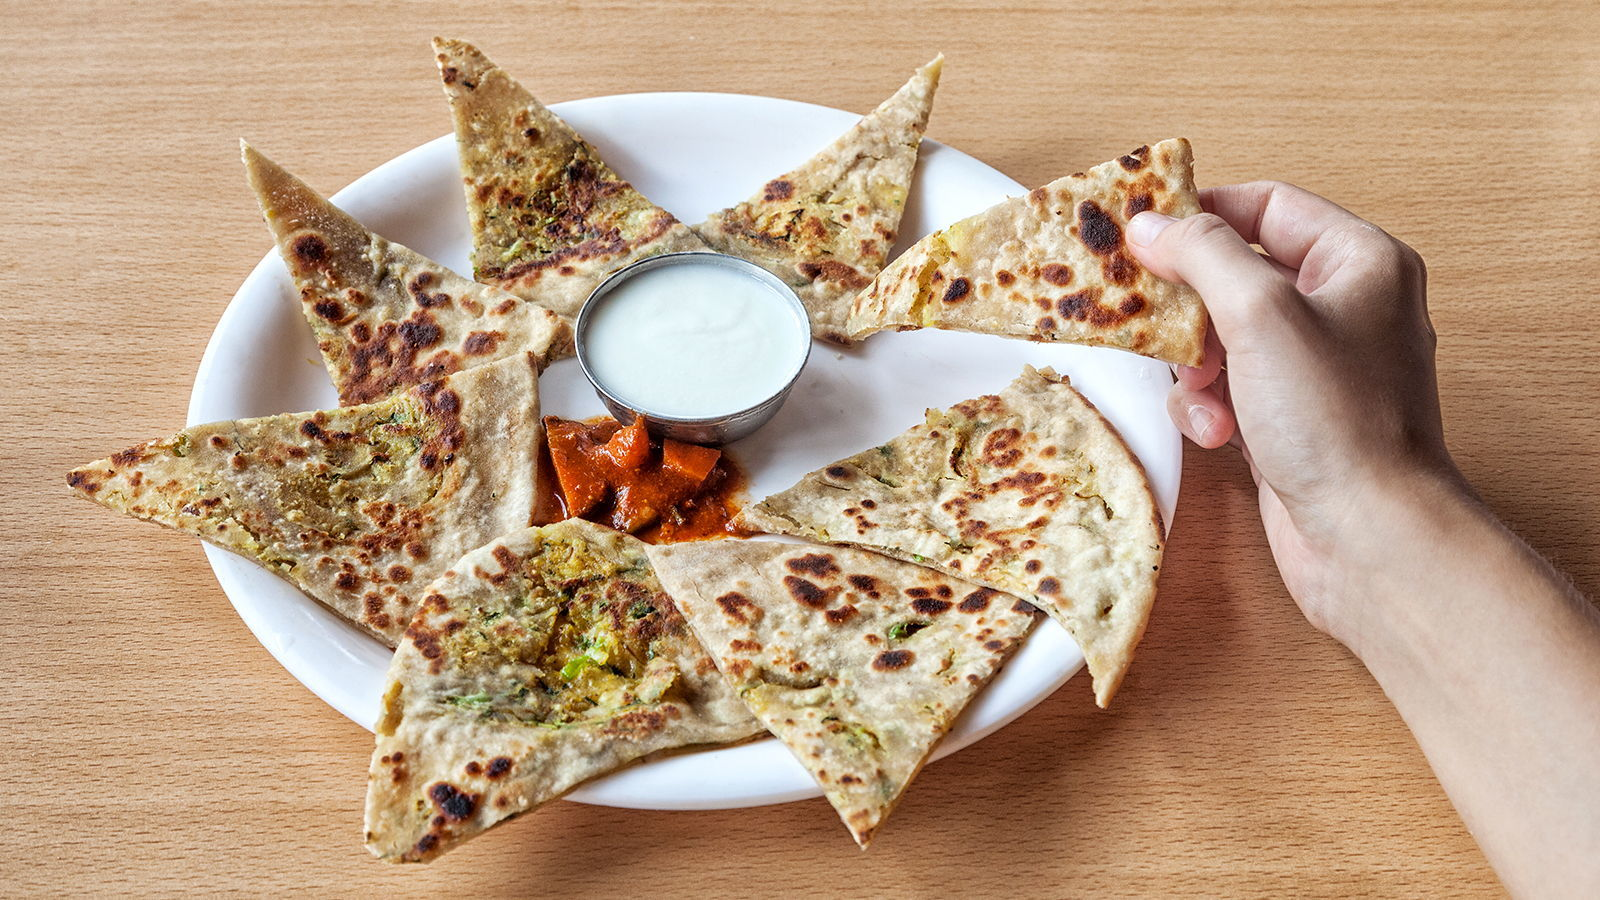 Picture of dosa or naan with dip on a plate on a table